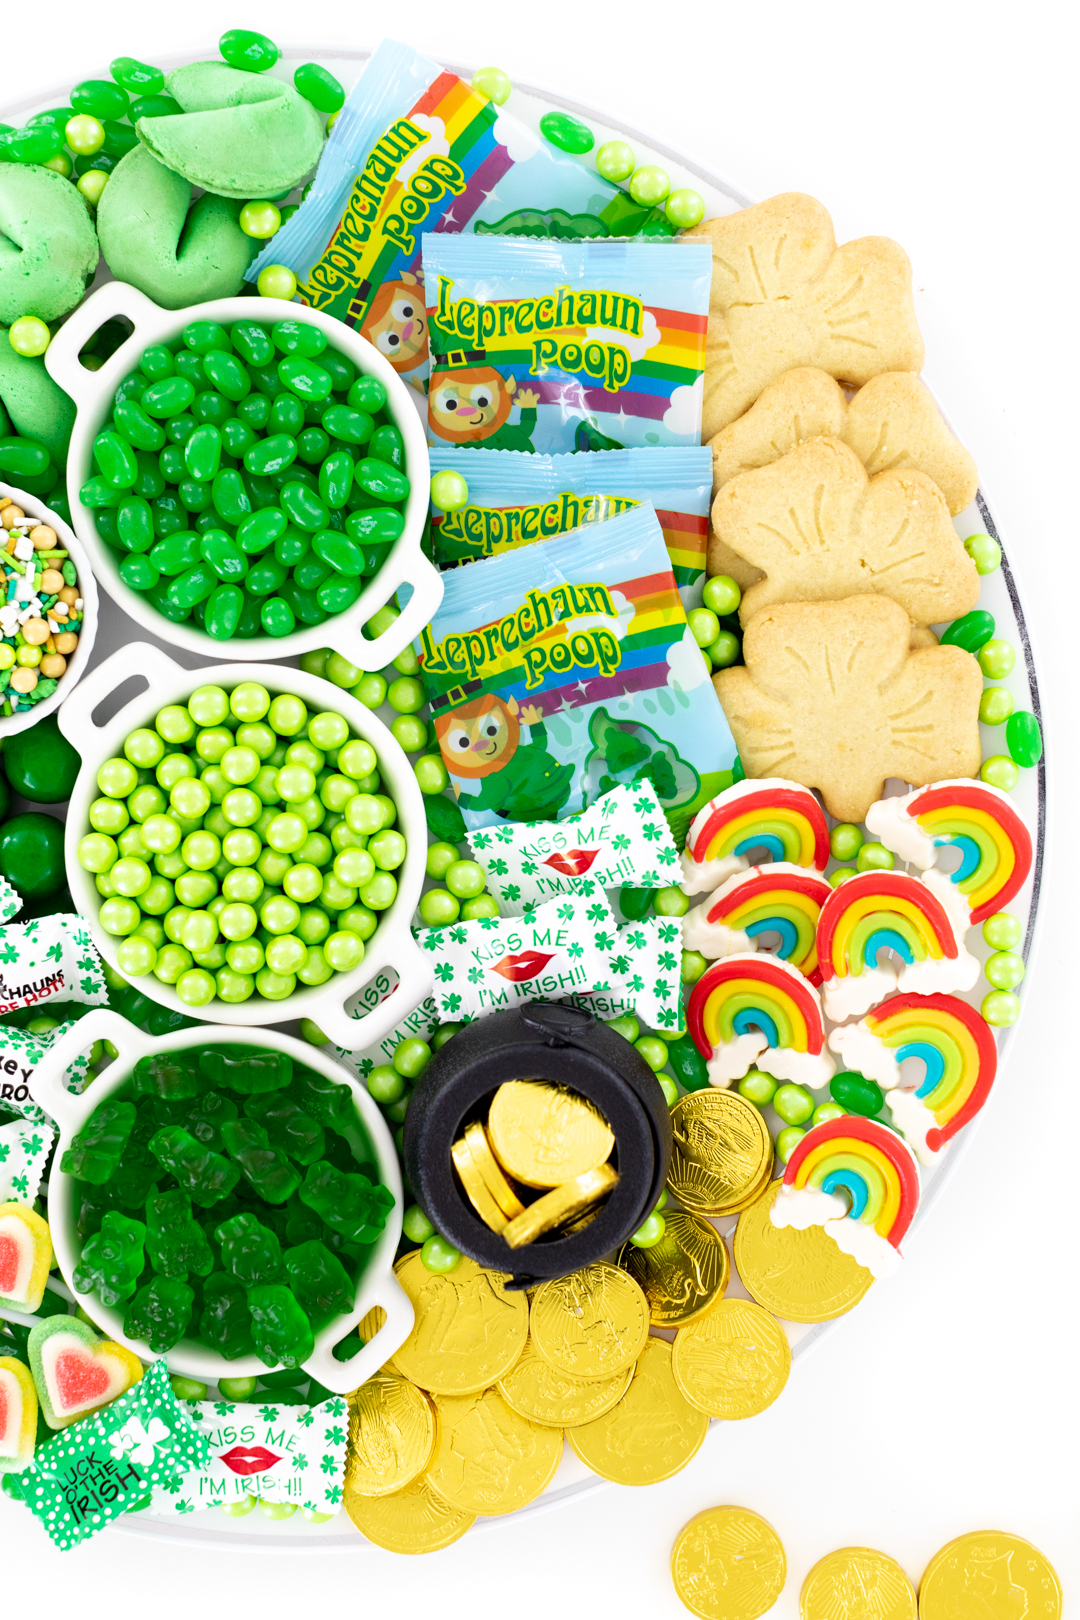 candy tray with leprechaun poop candy, shamrock cookies and more.